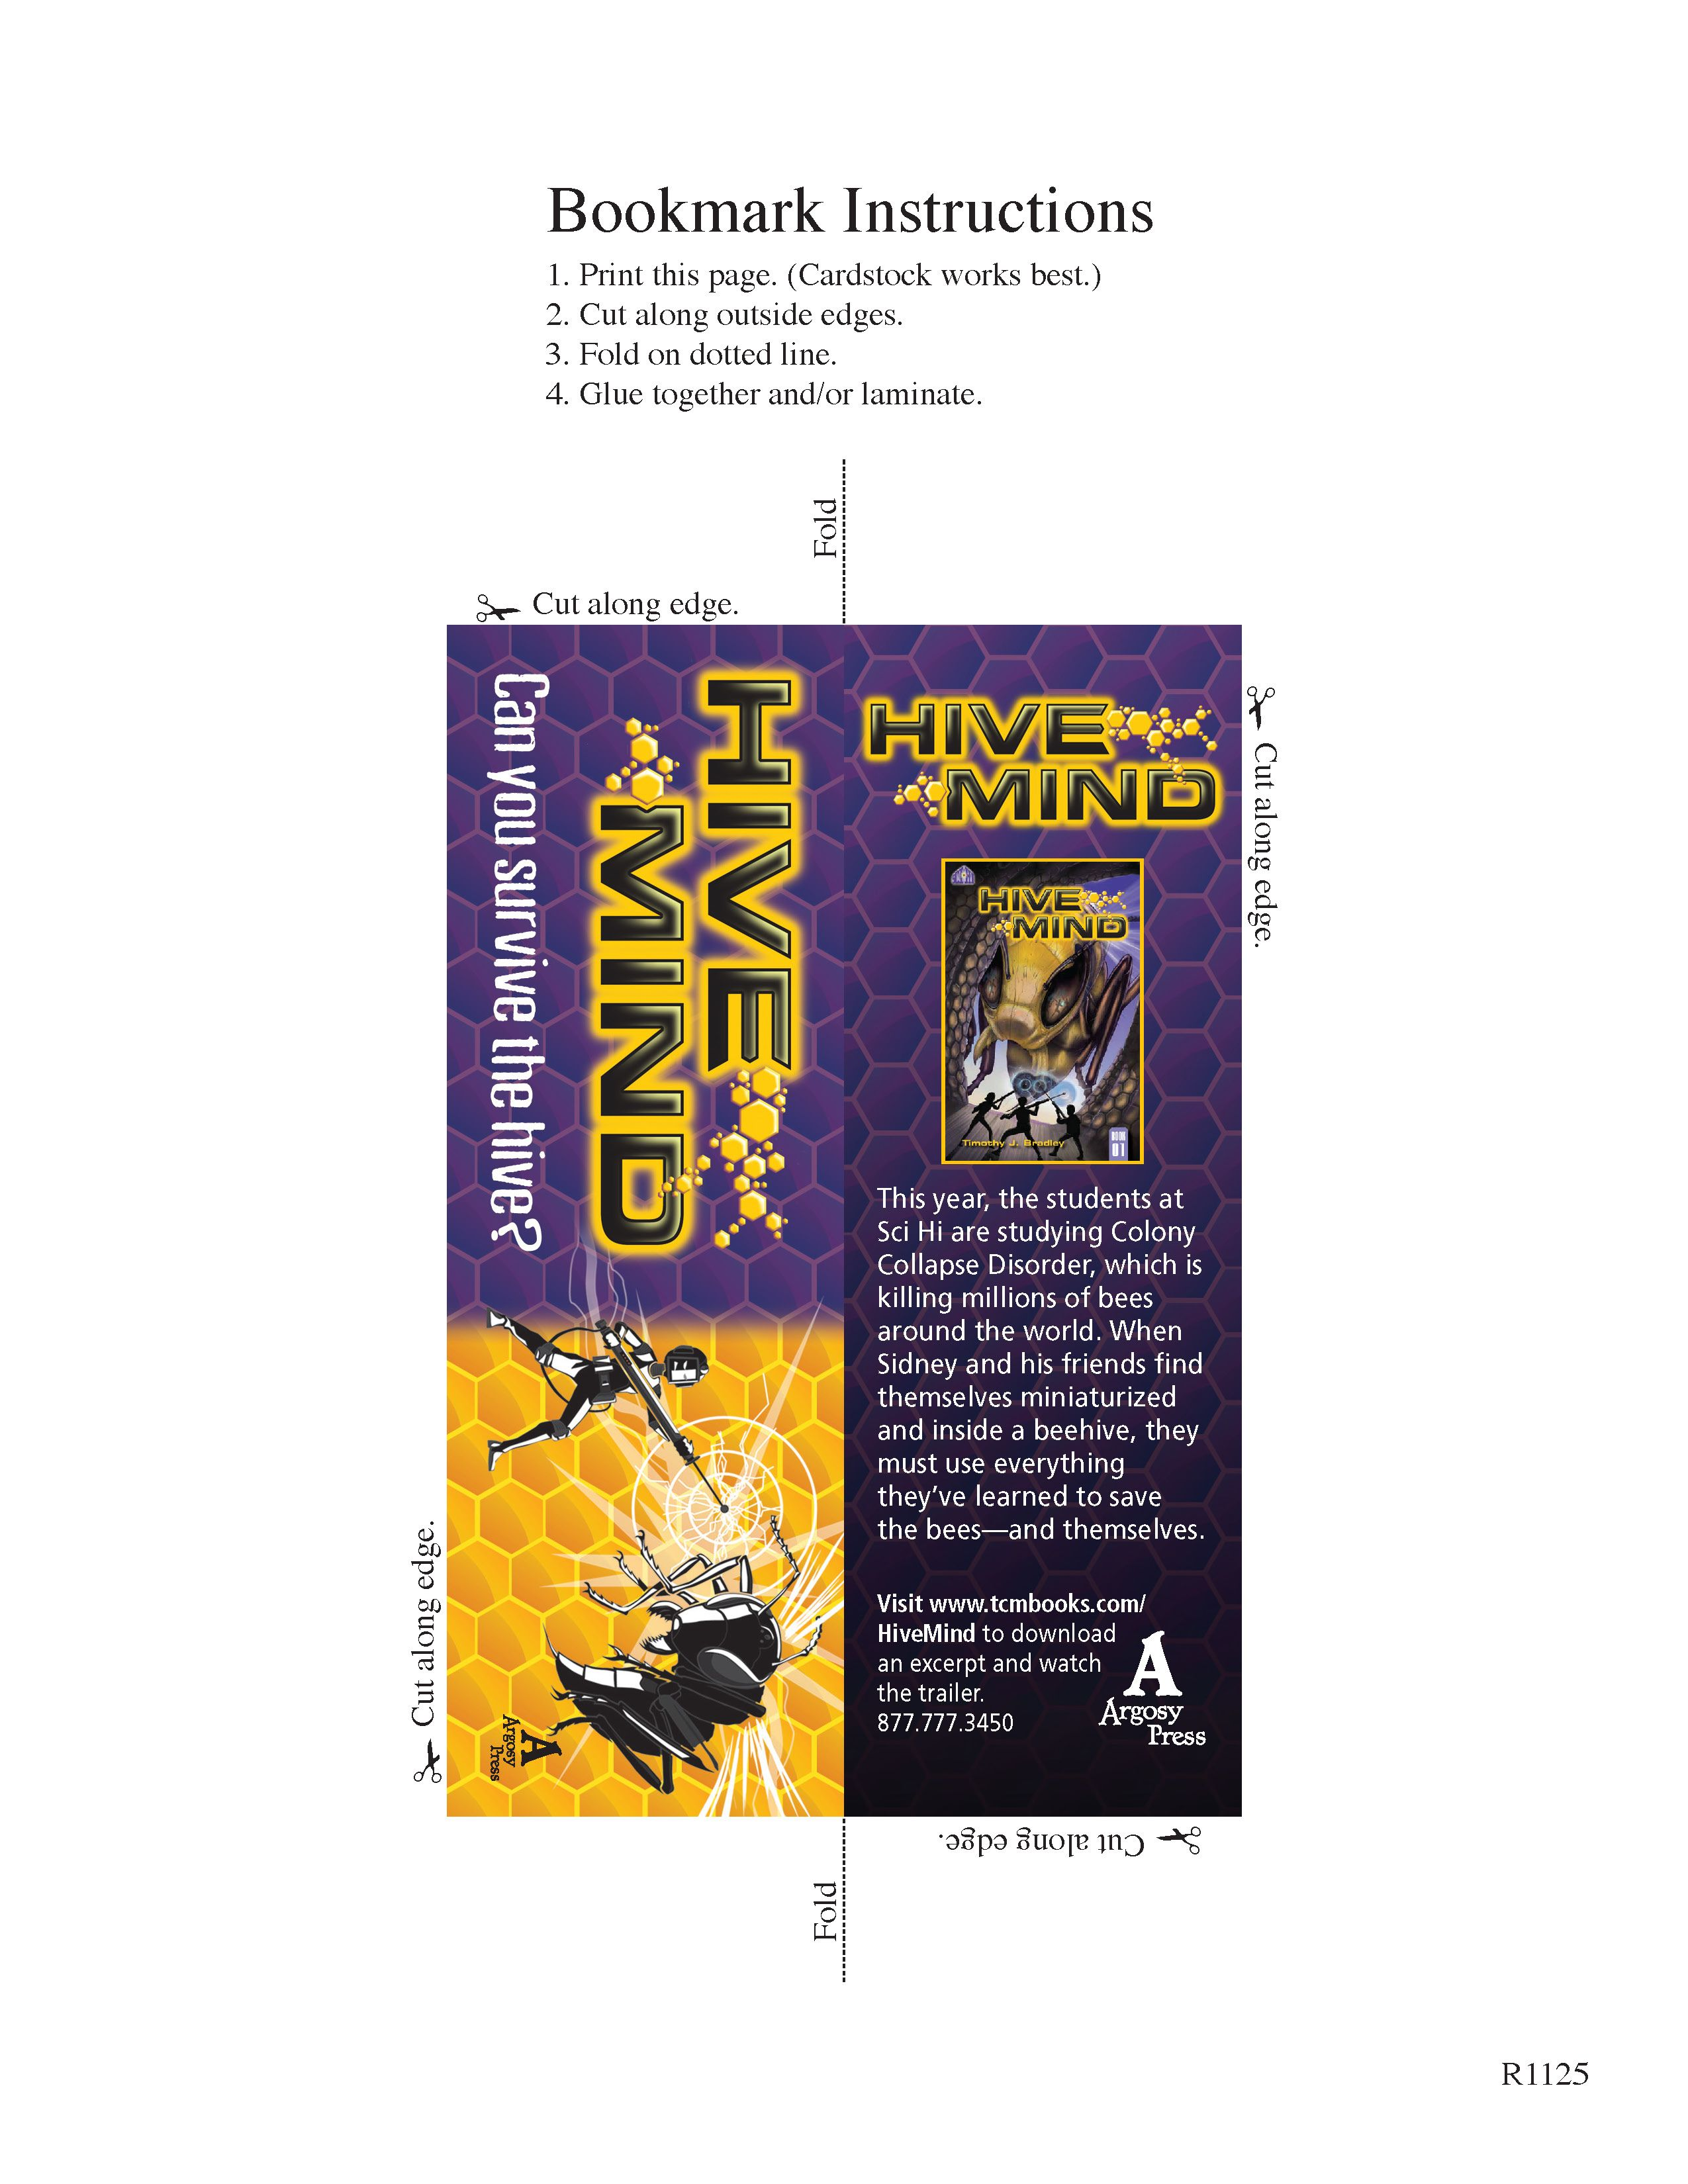 Enjoy This Free Hive Mind Bookmark